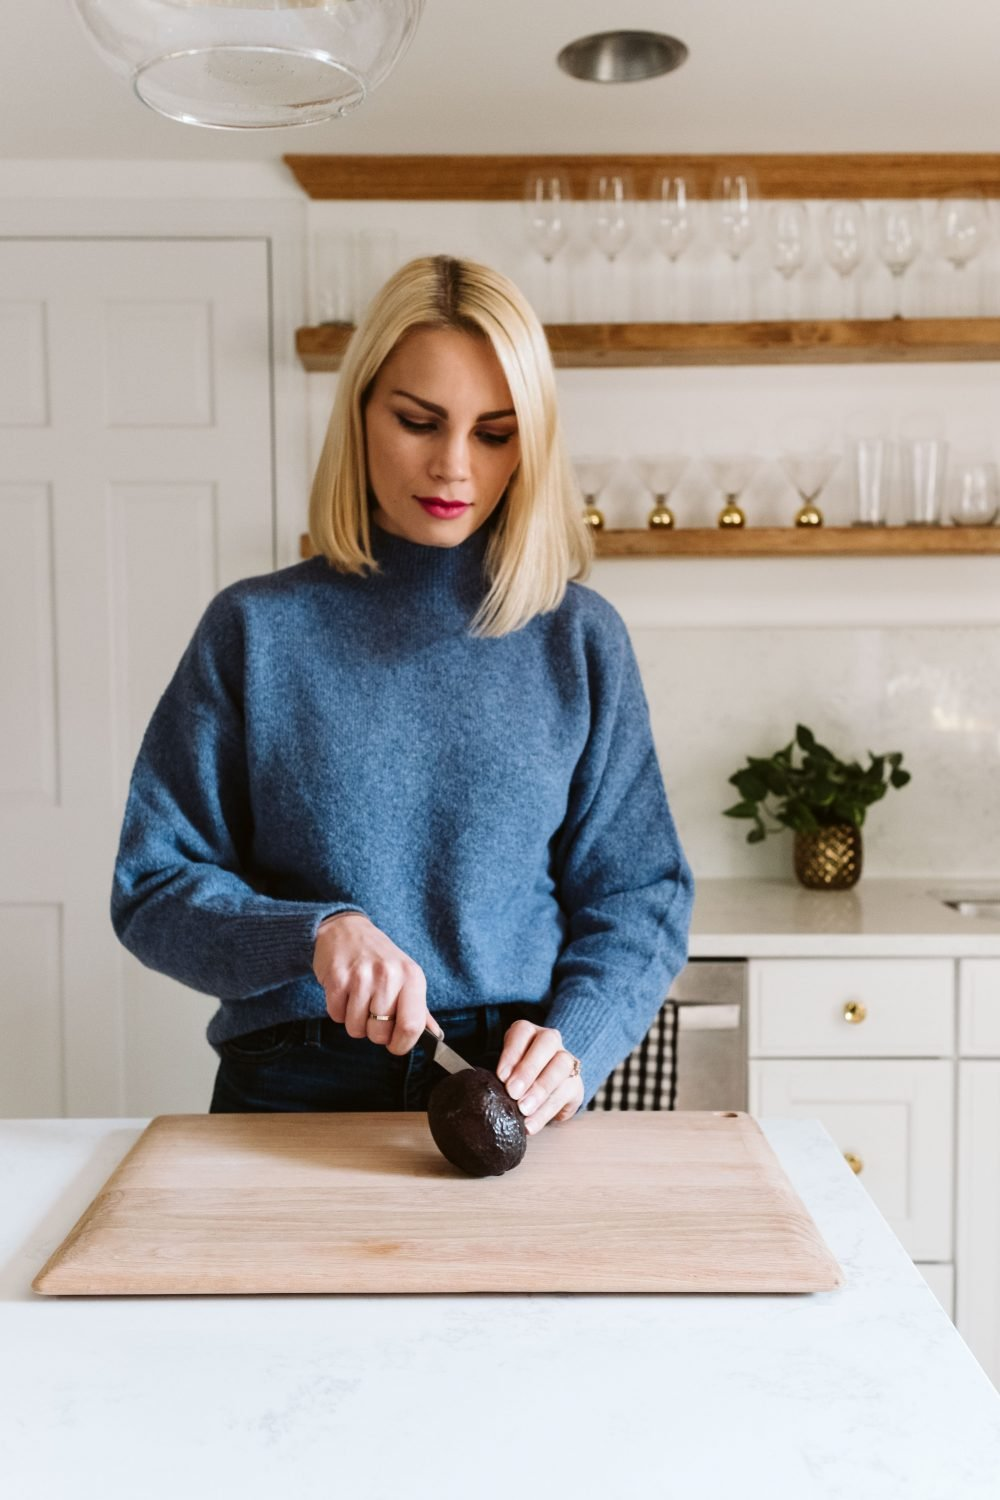 blonde woman demonstrating how to cut an avocado on a wooden board